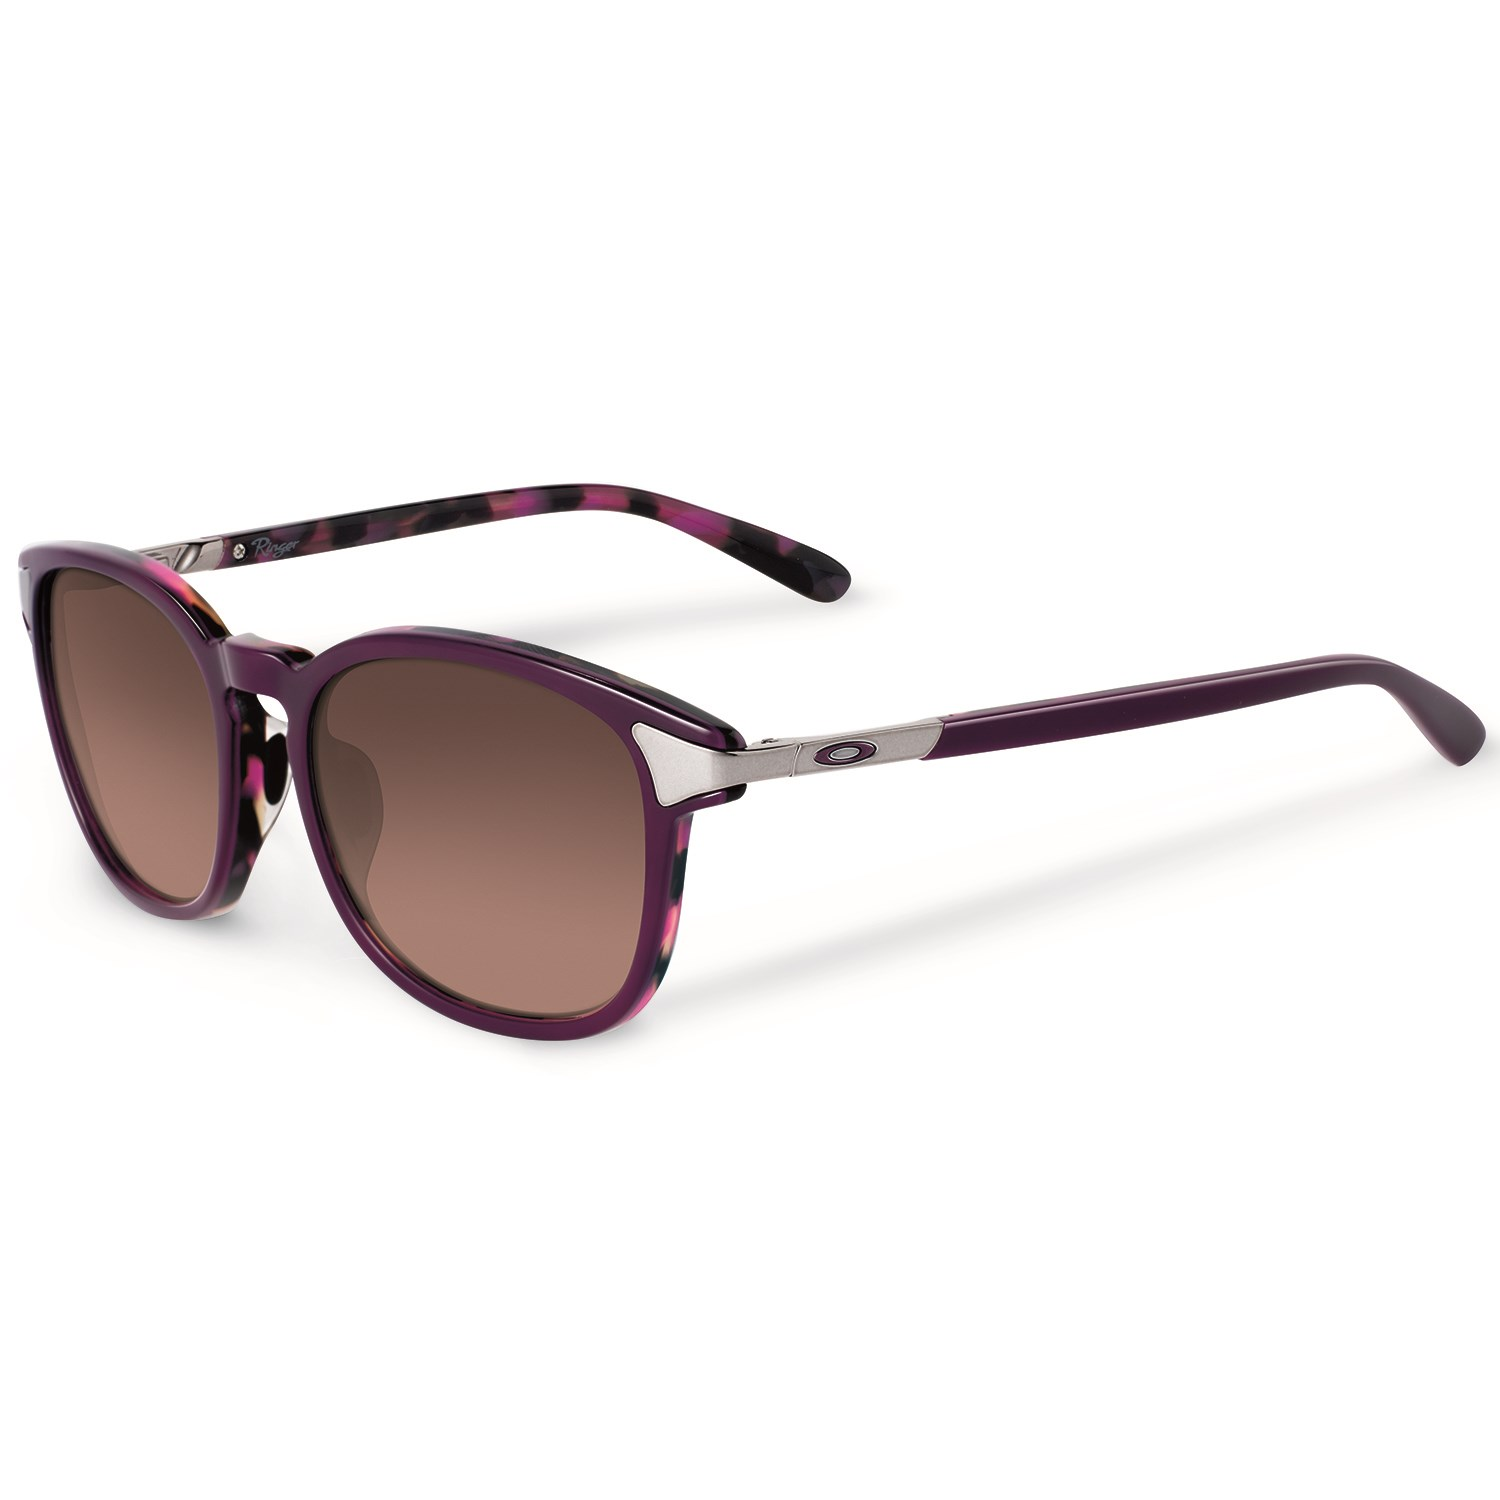 oakley womens sunglasses  Oakley Ringer Sunglasses - Women\u0027s